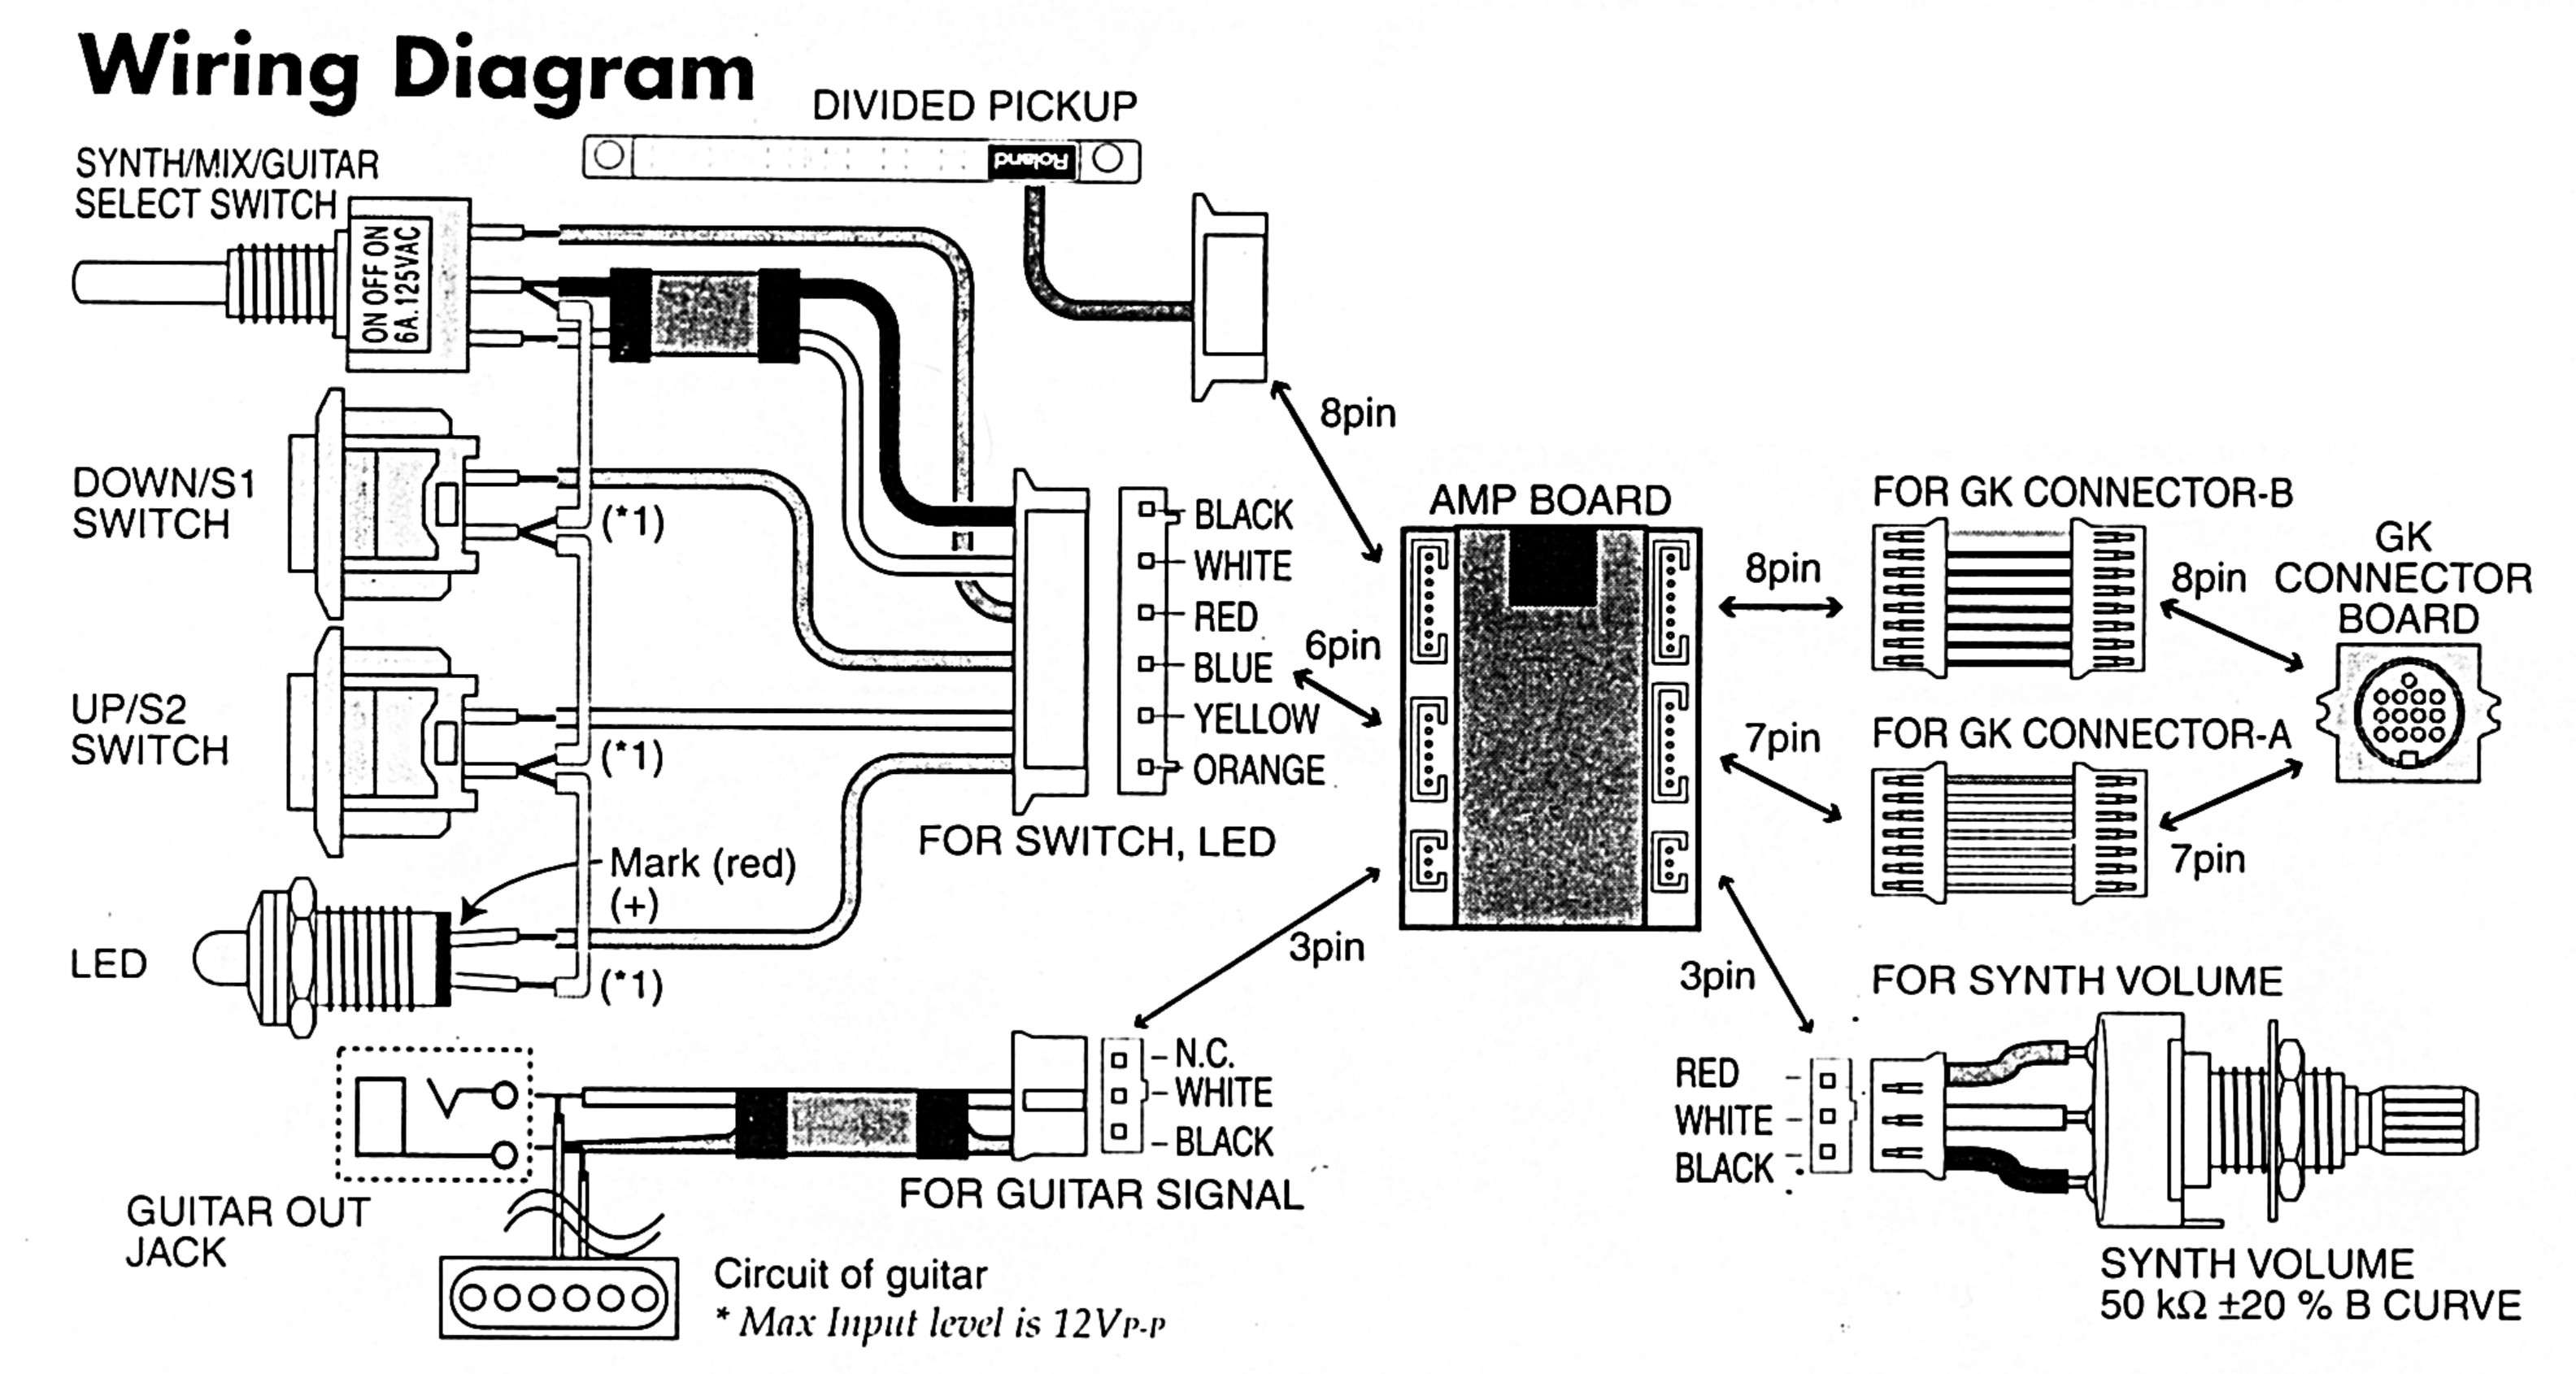 183640_verkabelungsplan roland gk kit gt3 thomann uk g & b pickups wiring diagram at edmiracle.co